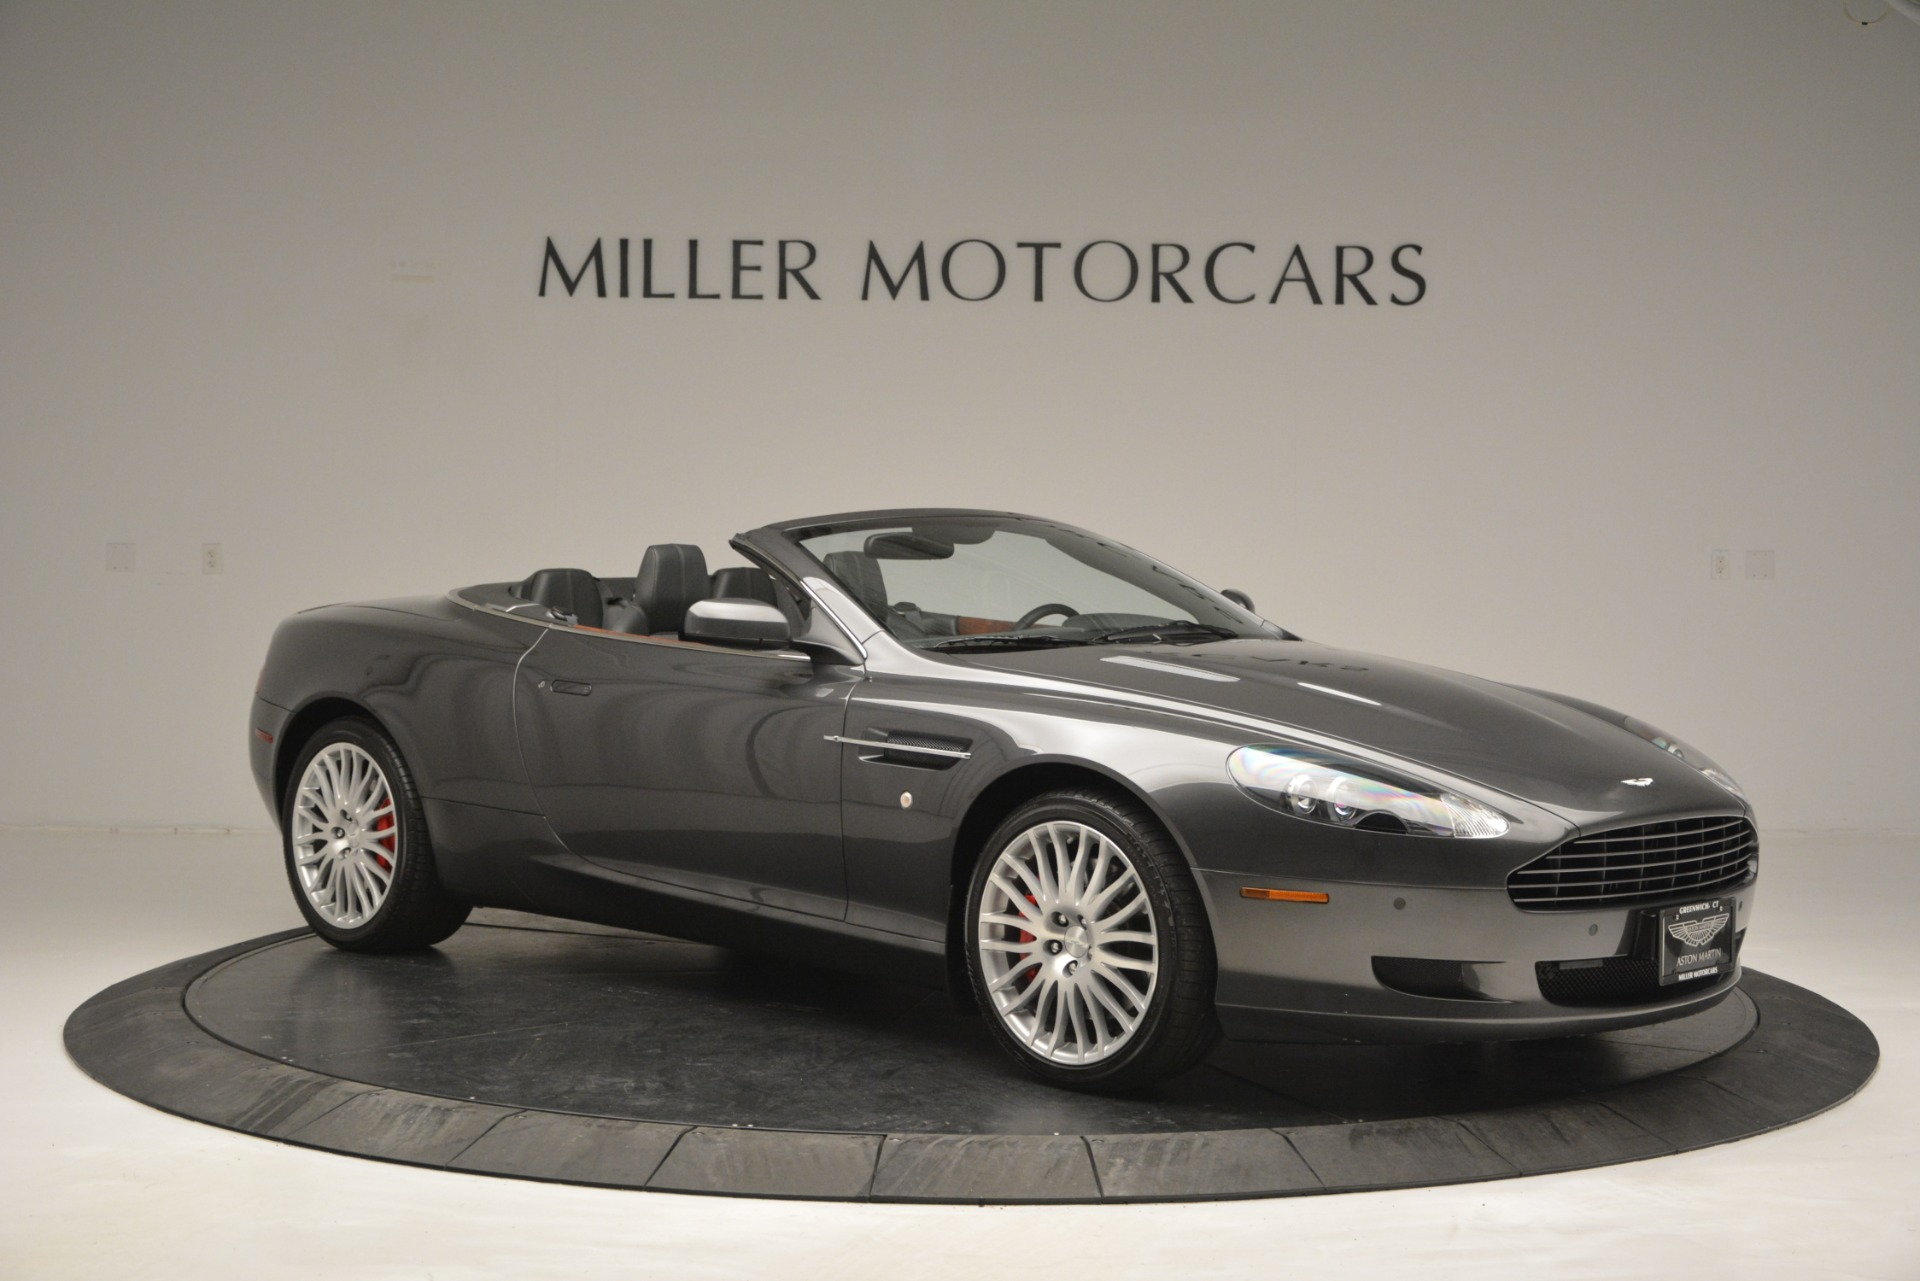 Used 2009 Aston Martin DB9 Convertible For Sale In Westport, CT 2930_p10